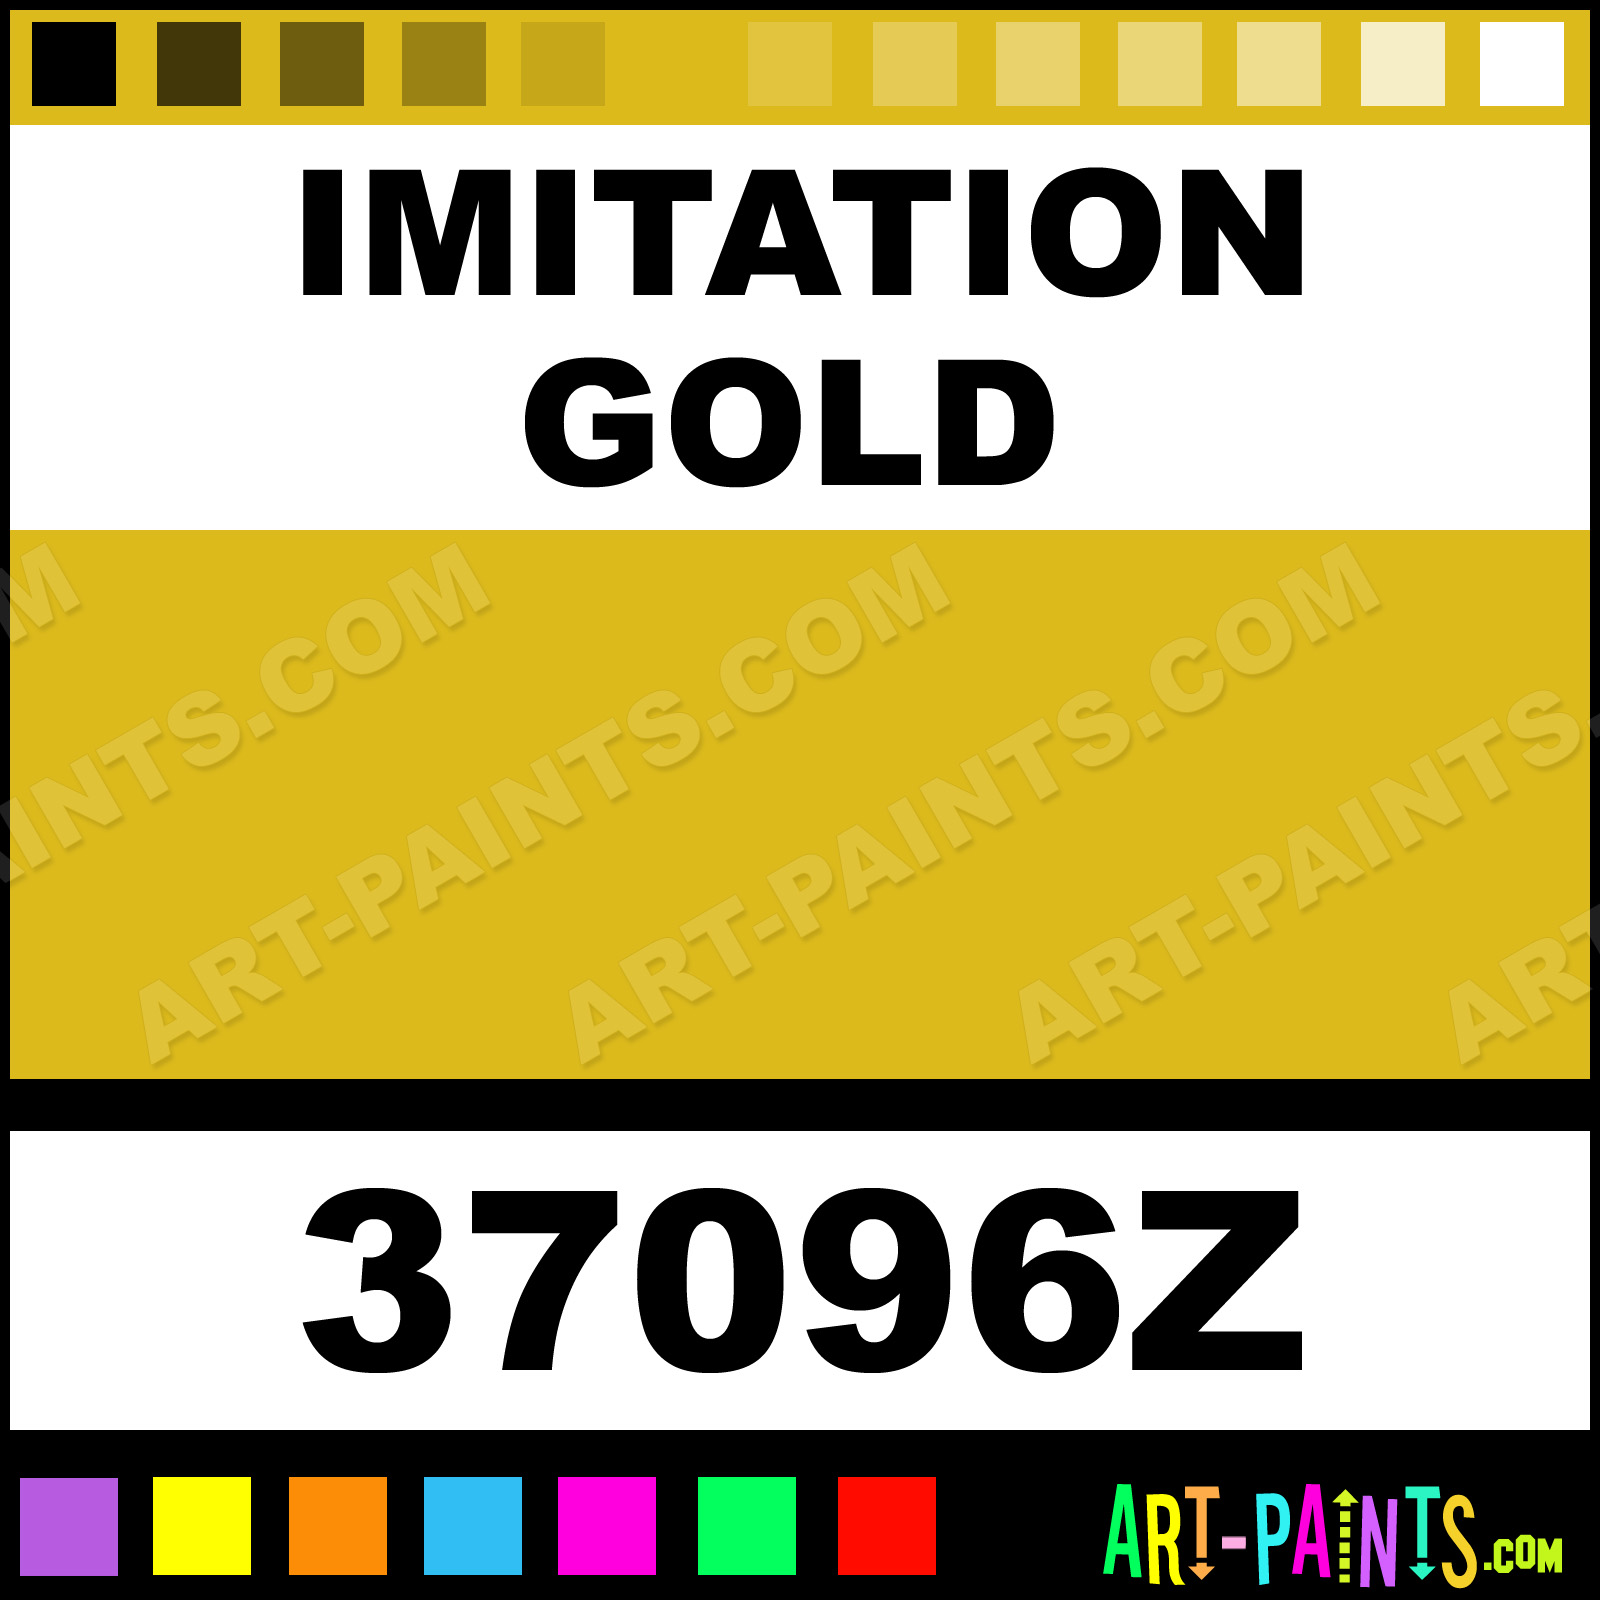 bullion novelty alamy bar usa gold stock photo imitation